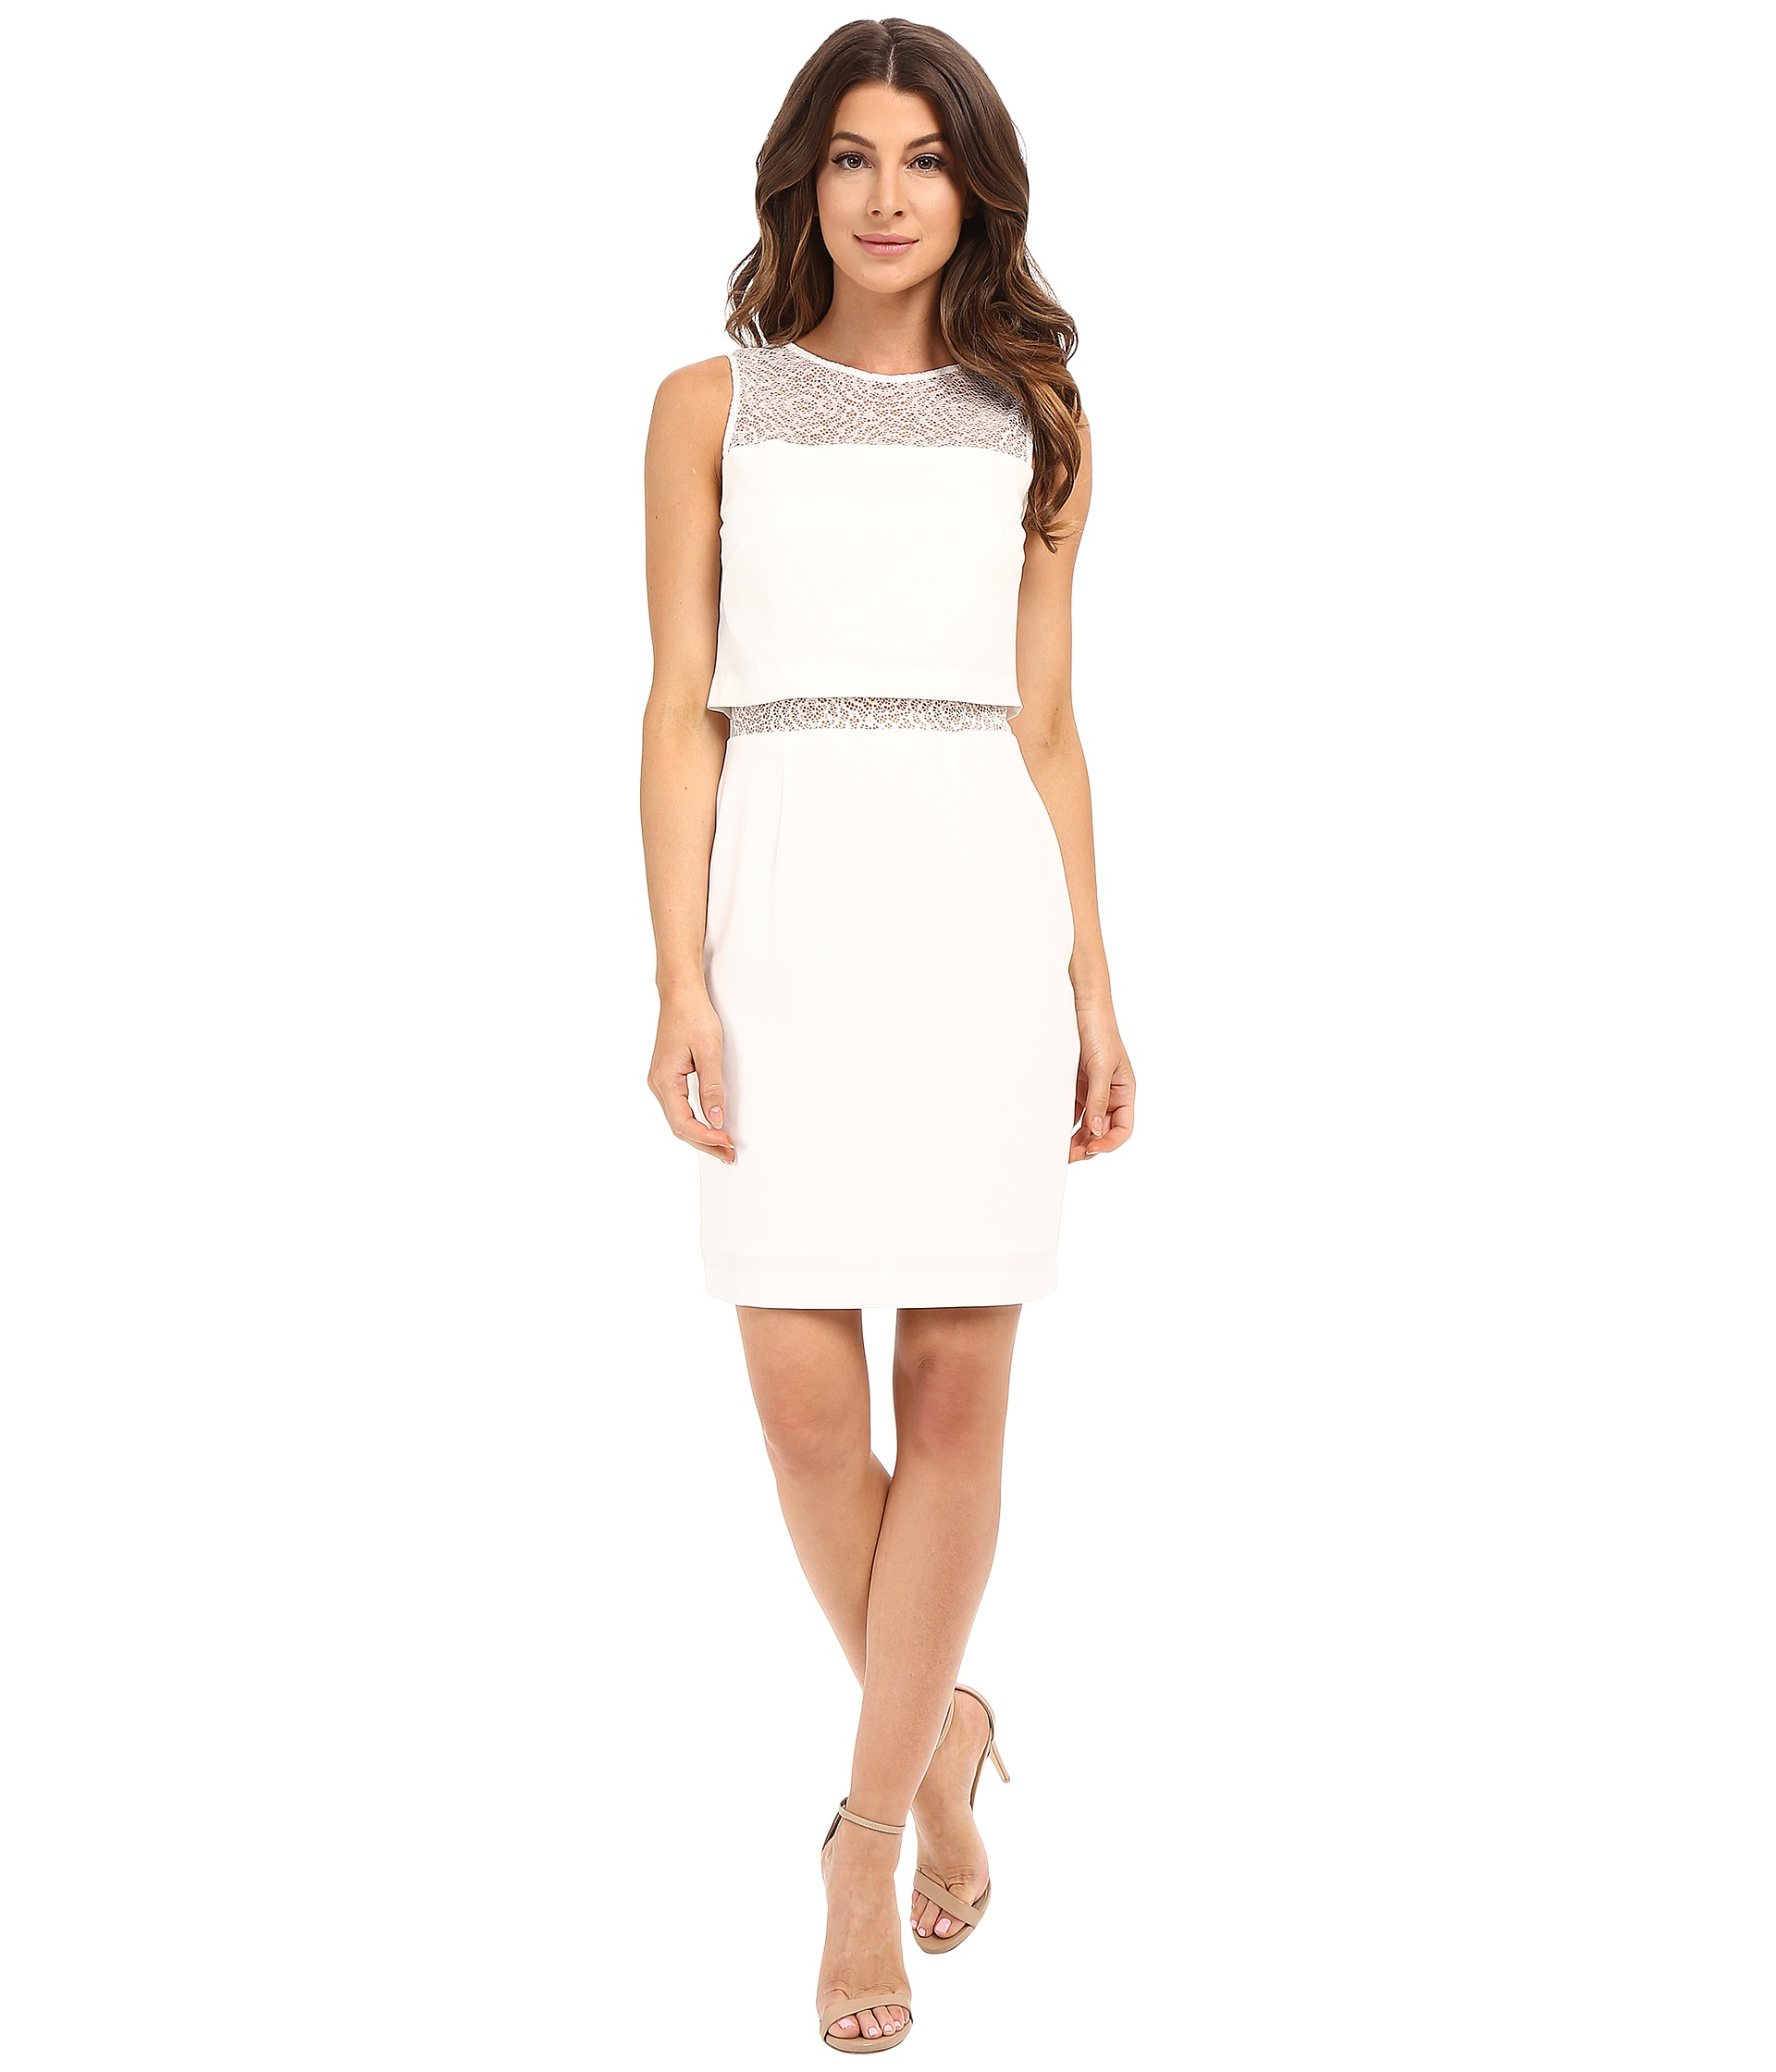 V front white dress youth